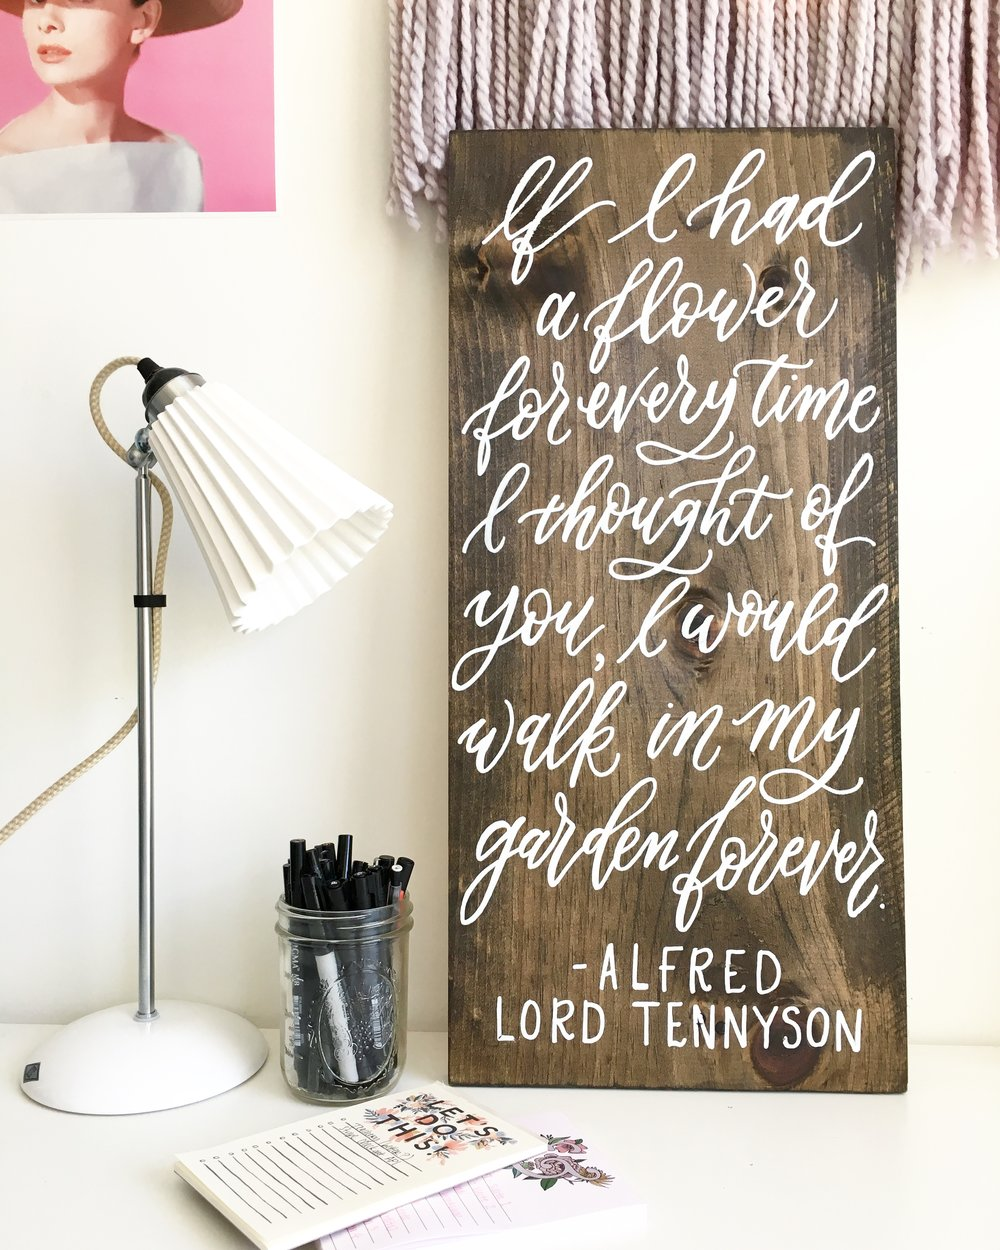 alfred lord tennyson quote on a wood sign, wood wedding sign, custom wood sign